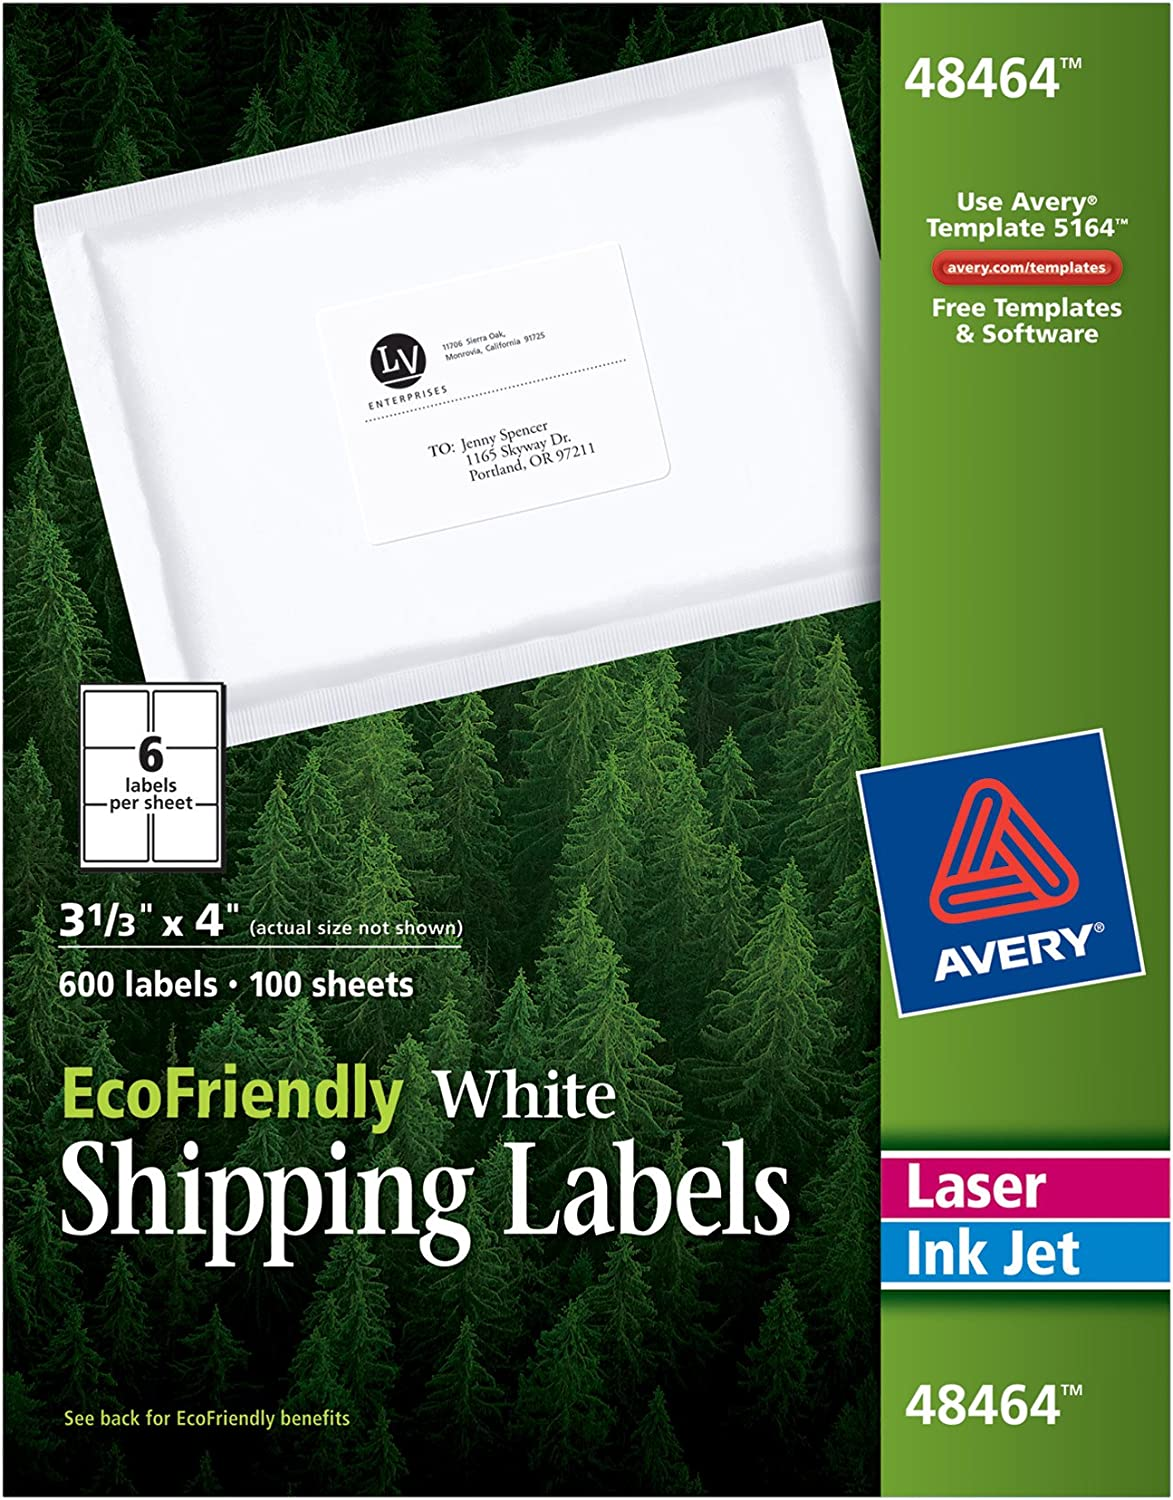 AVERY White EcoFriendly Shipping Labels, 3.33 x 4 Inches, Box of 600 (48464): Office Products